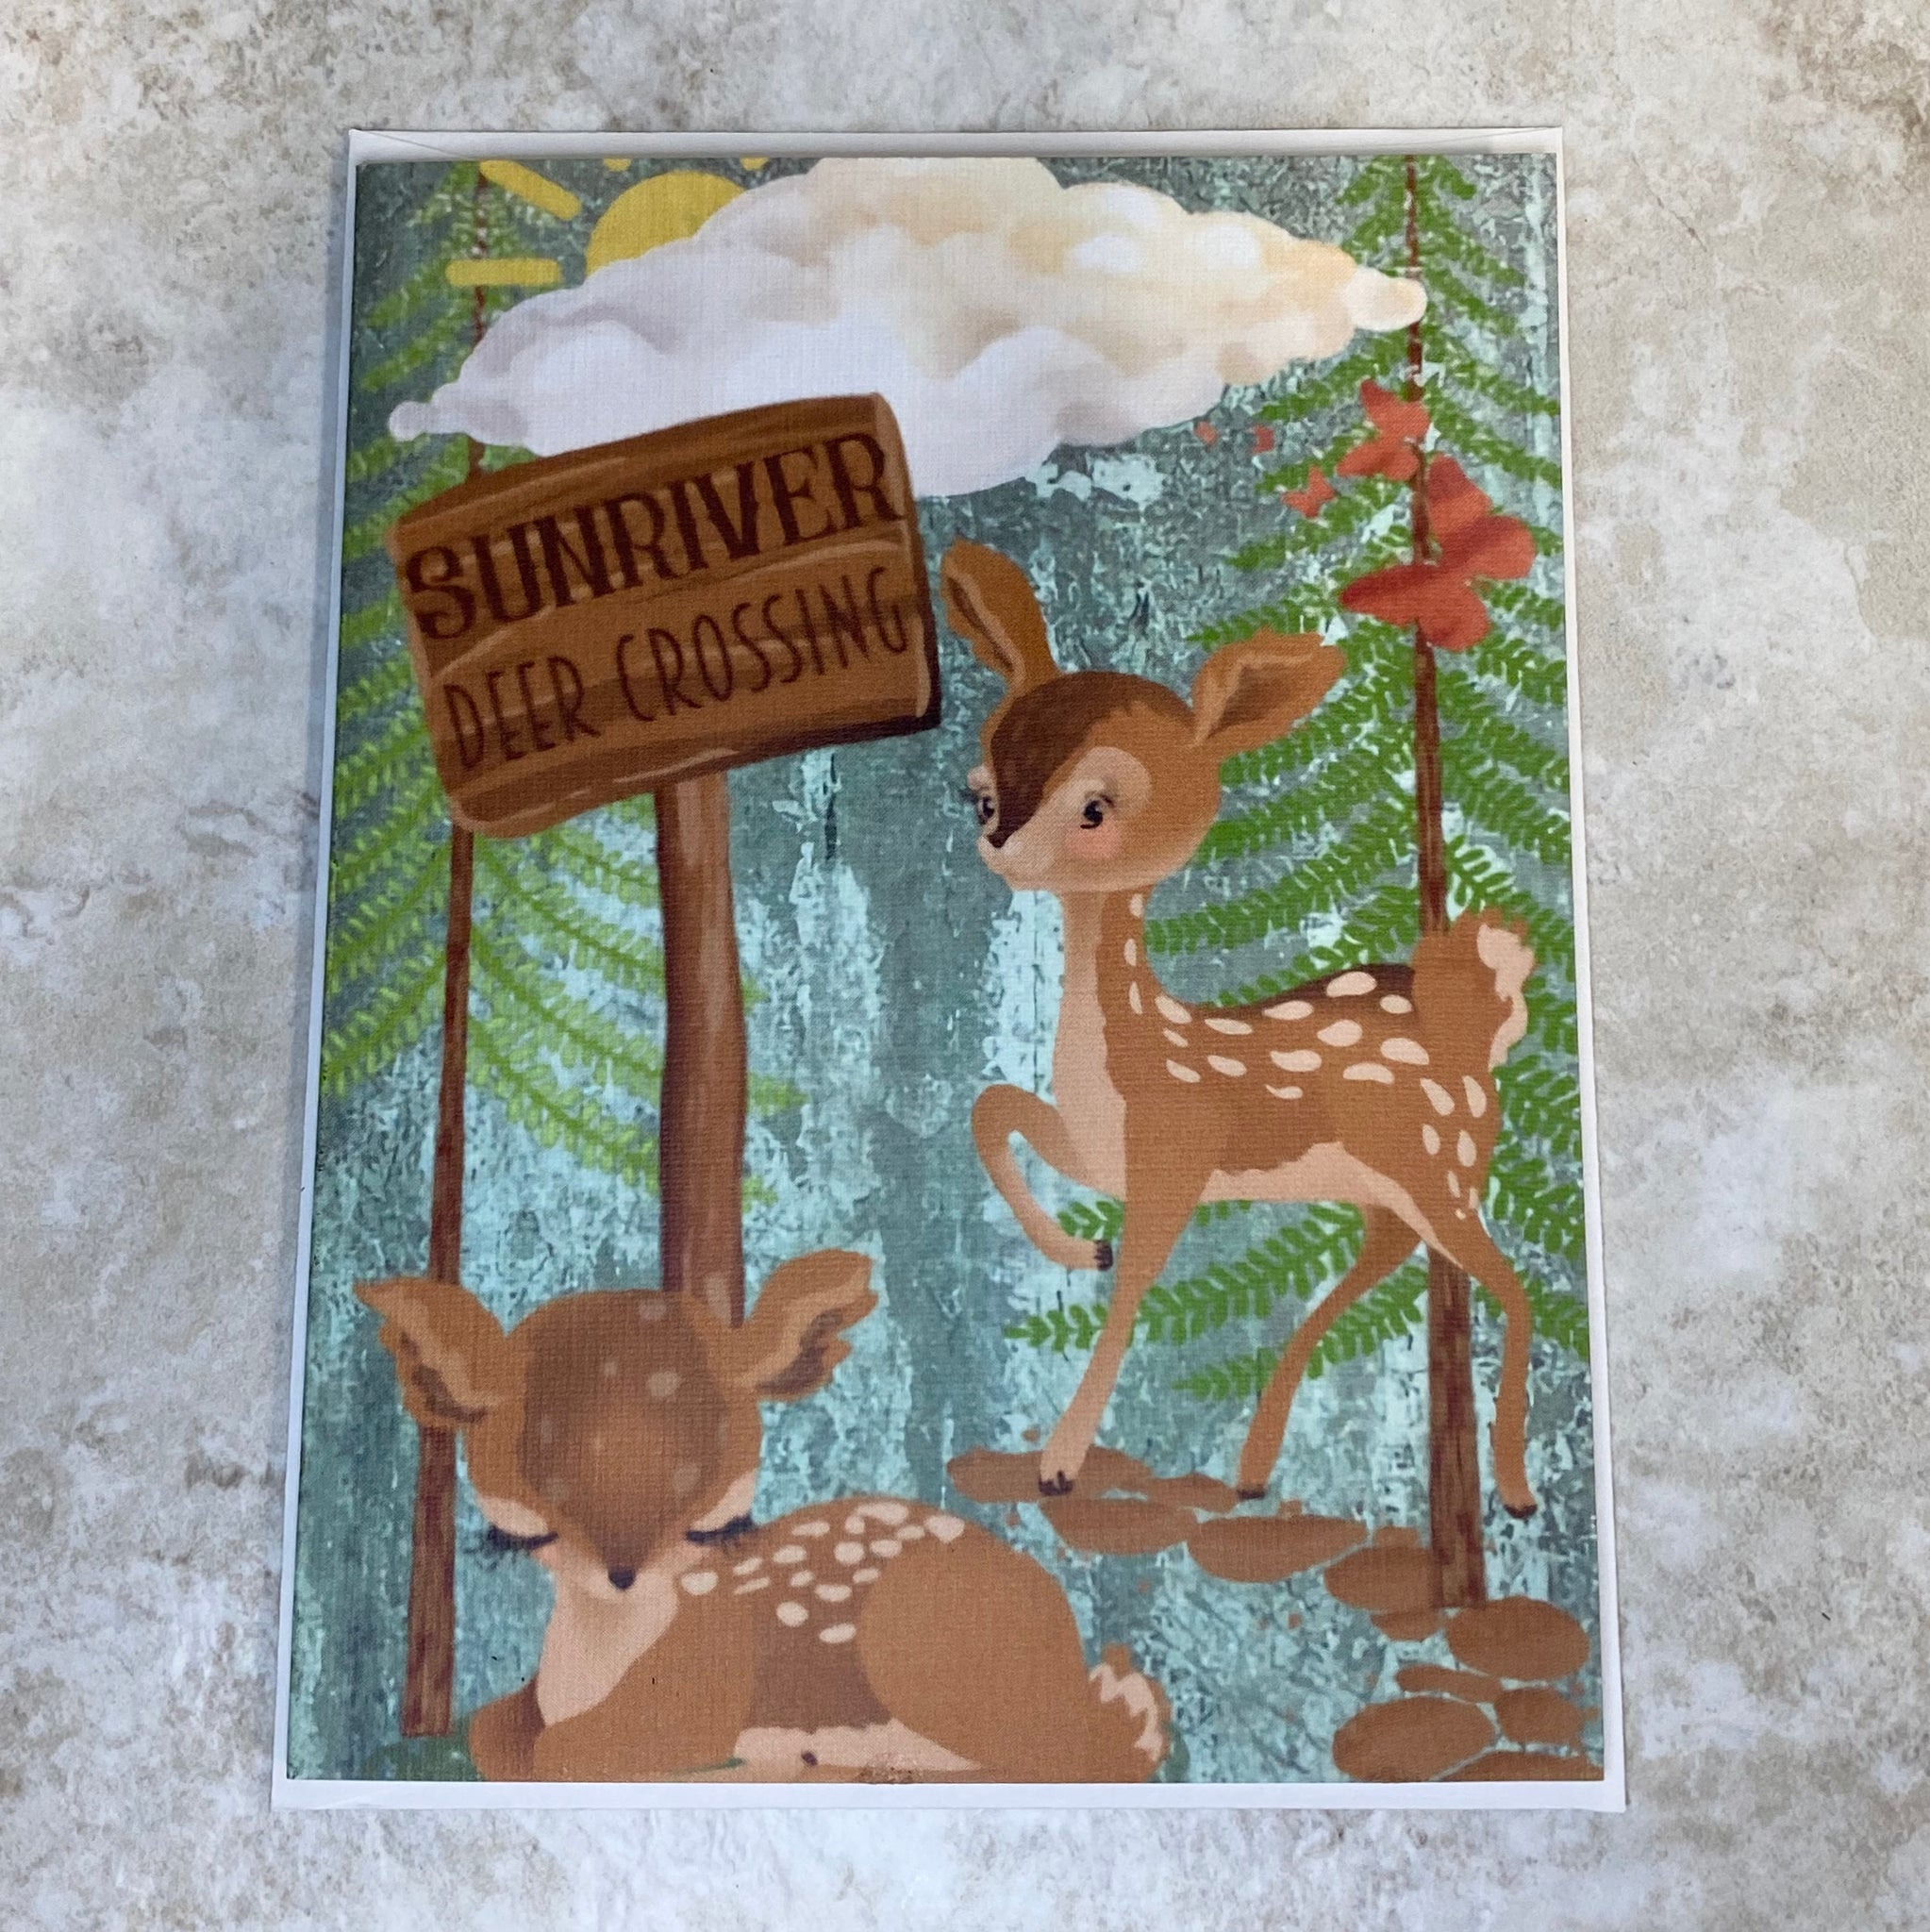 Sunriver Deer Crossing Greeting Card - Created by Houser House Creations